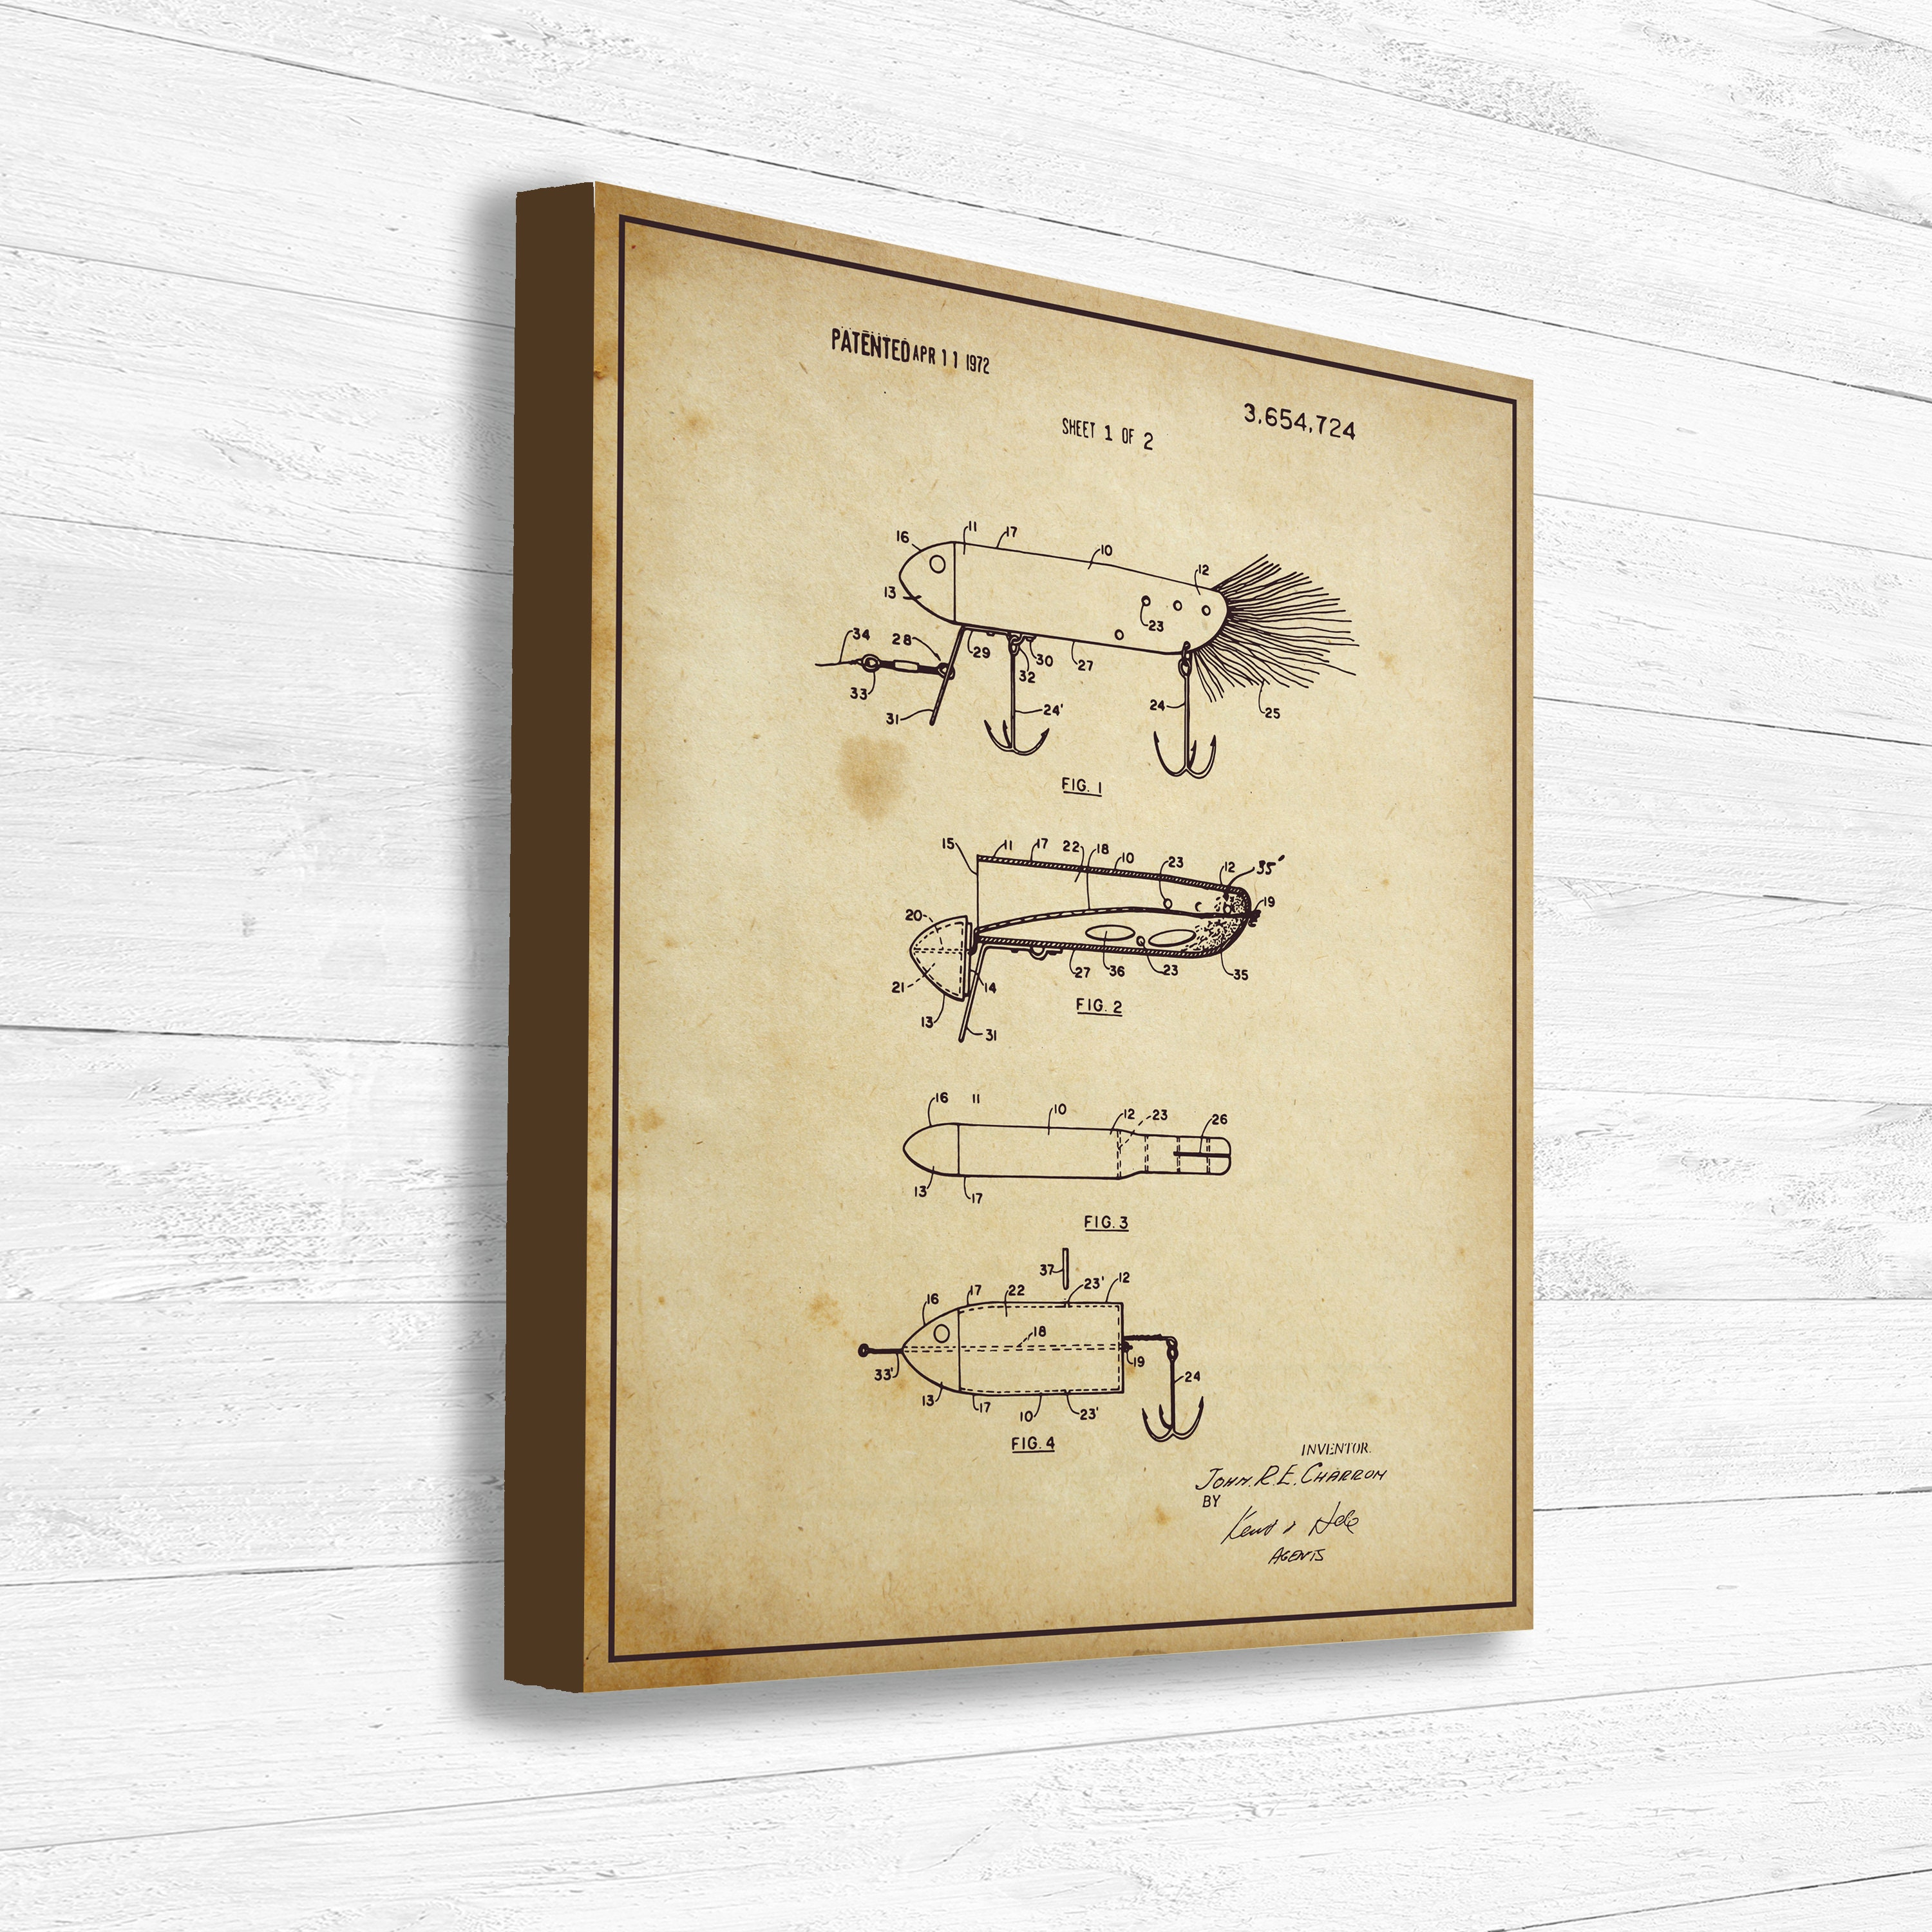 Fishing Lure, Patent, Fishing, Old Patent, Invention, Vintage Patent ...